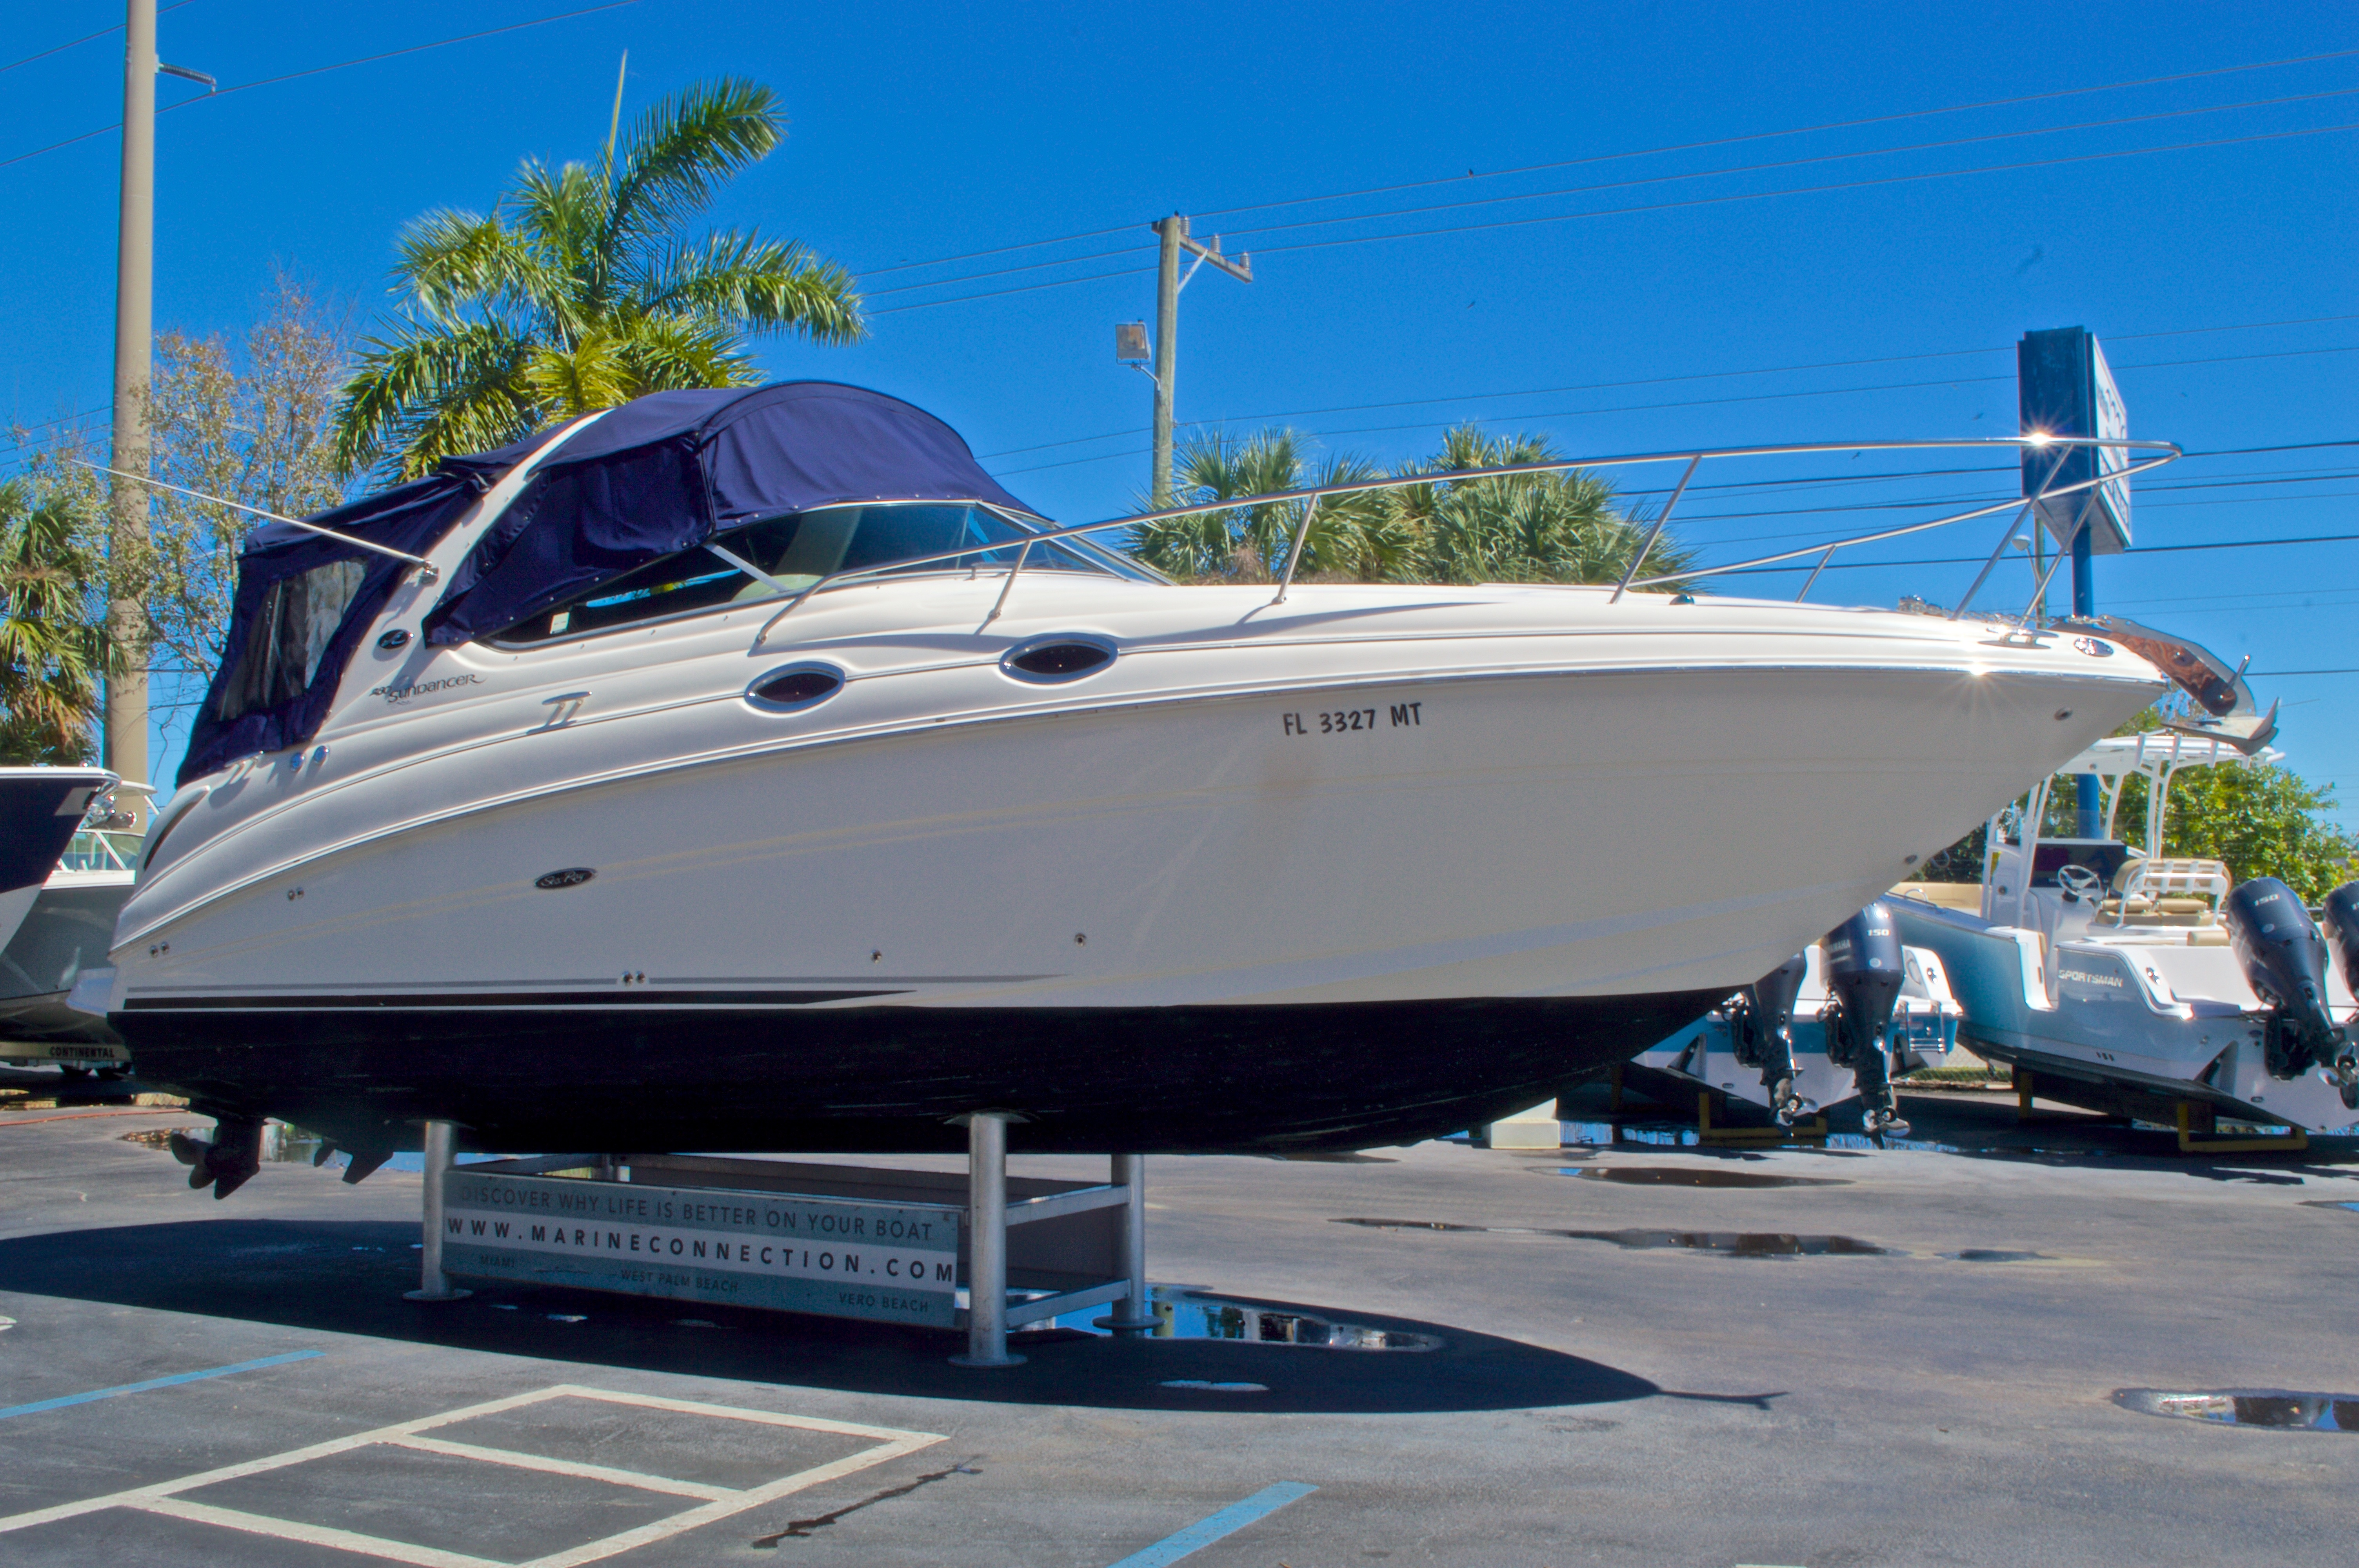 Thumbnail 5 for Used 2005 Sea Ray 280 Sundancer boat for sale in West Palm Beach, FL